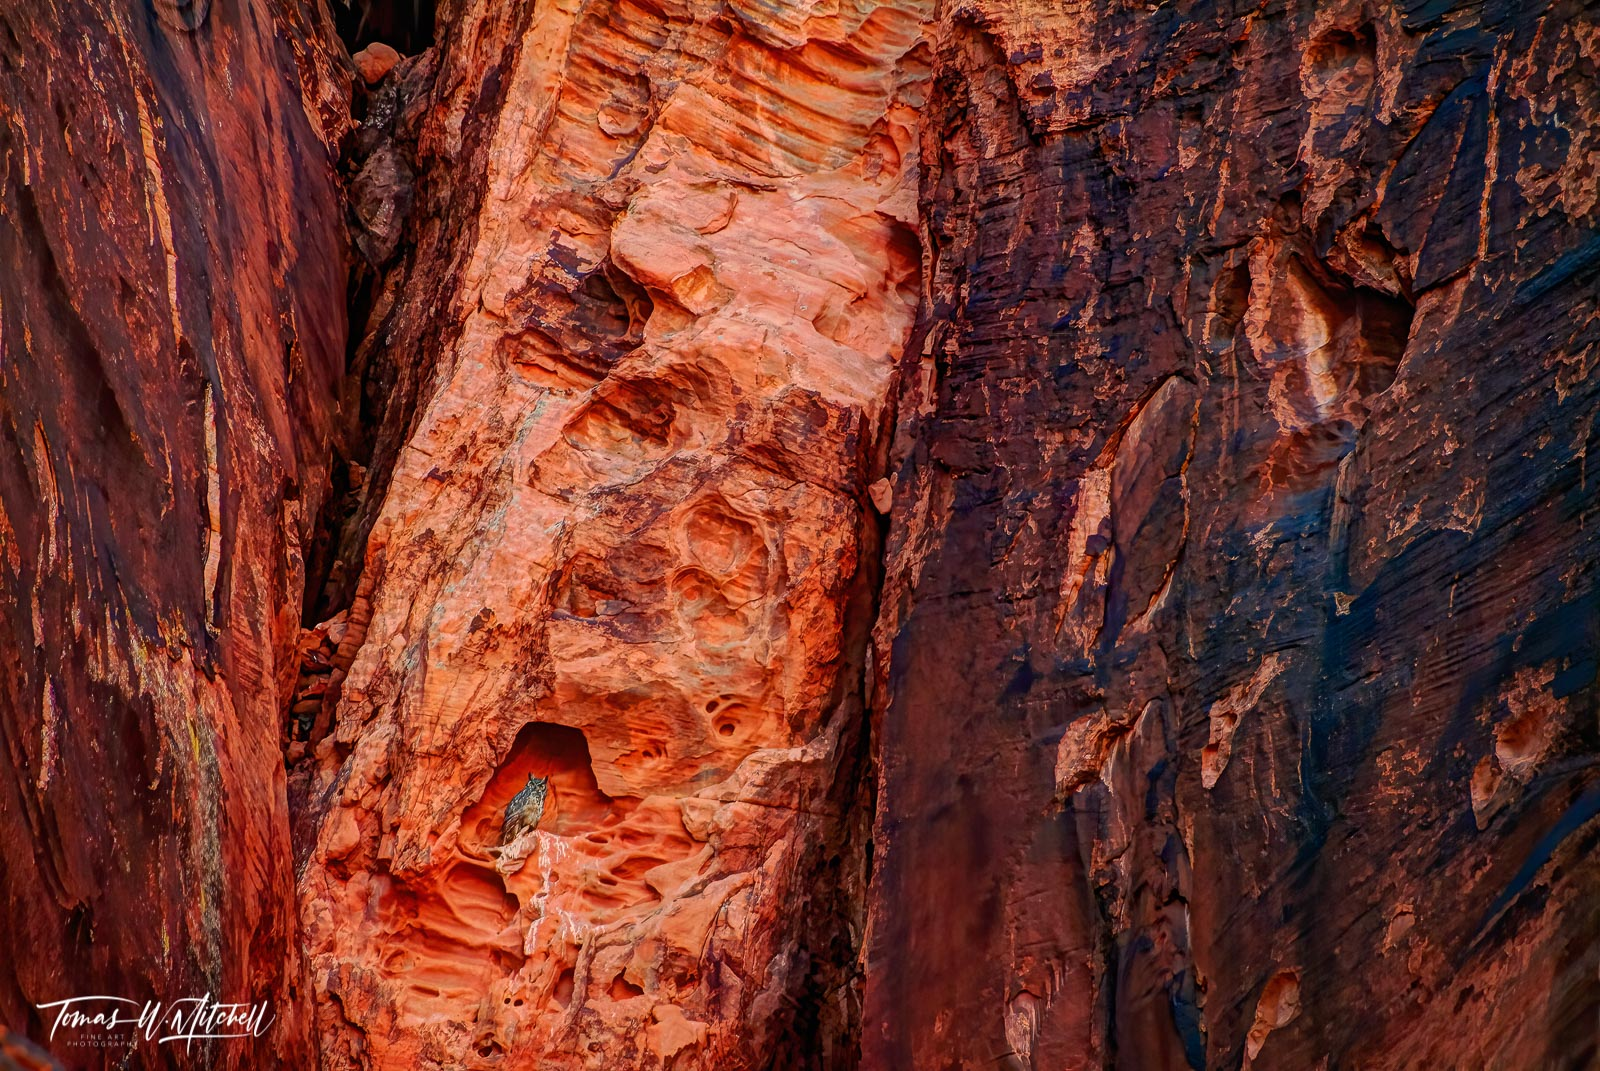 limited edition, fine art, prints, valley of fire, nevada, great horned owl, bird, cliff, abstract, photograph red rock, photo